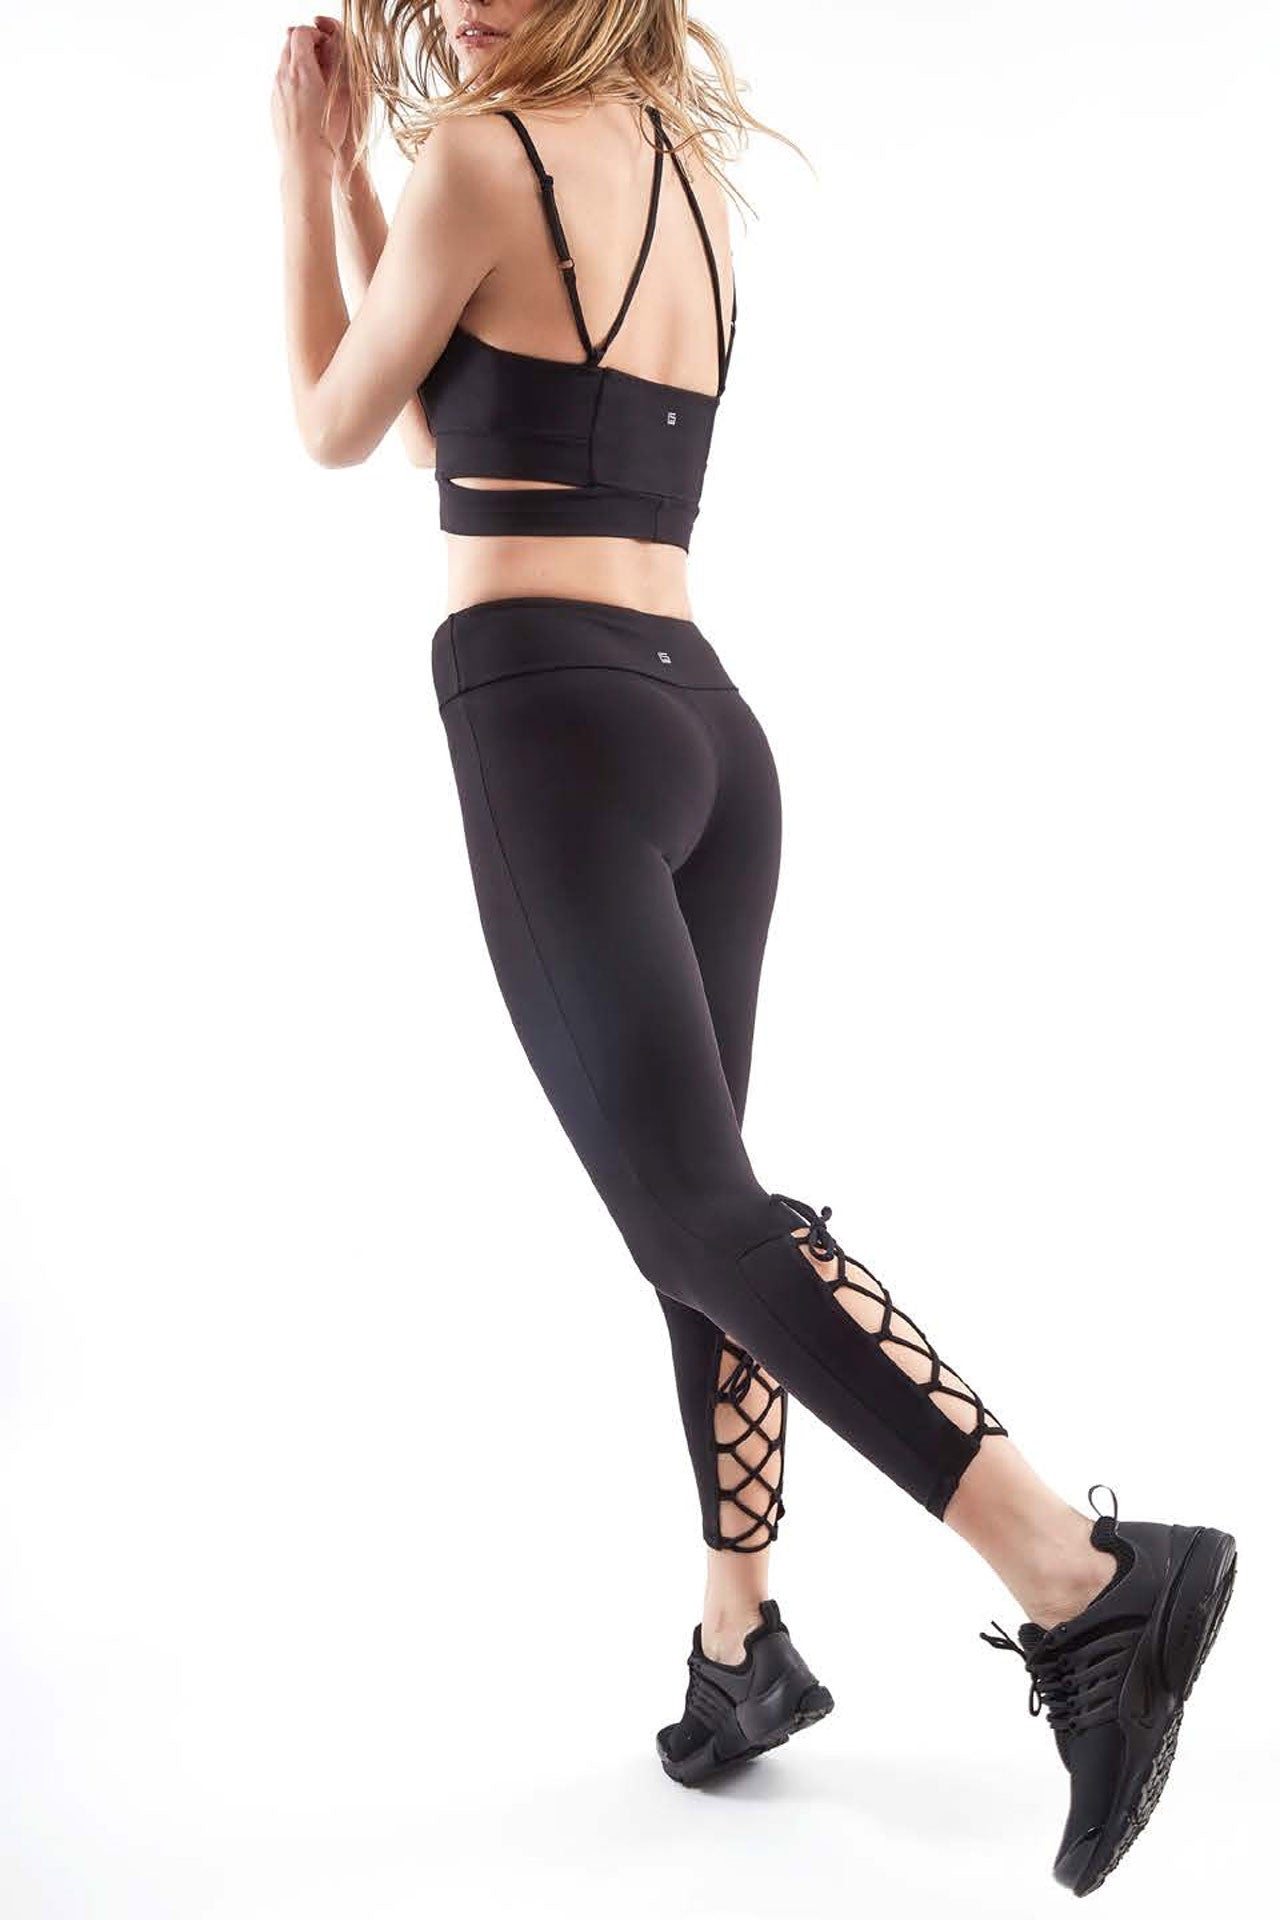 Lanston Jett Lace Back Legging - Sculptique